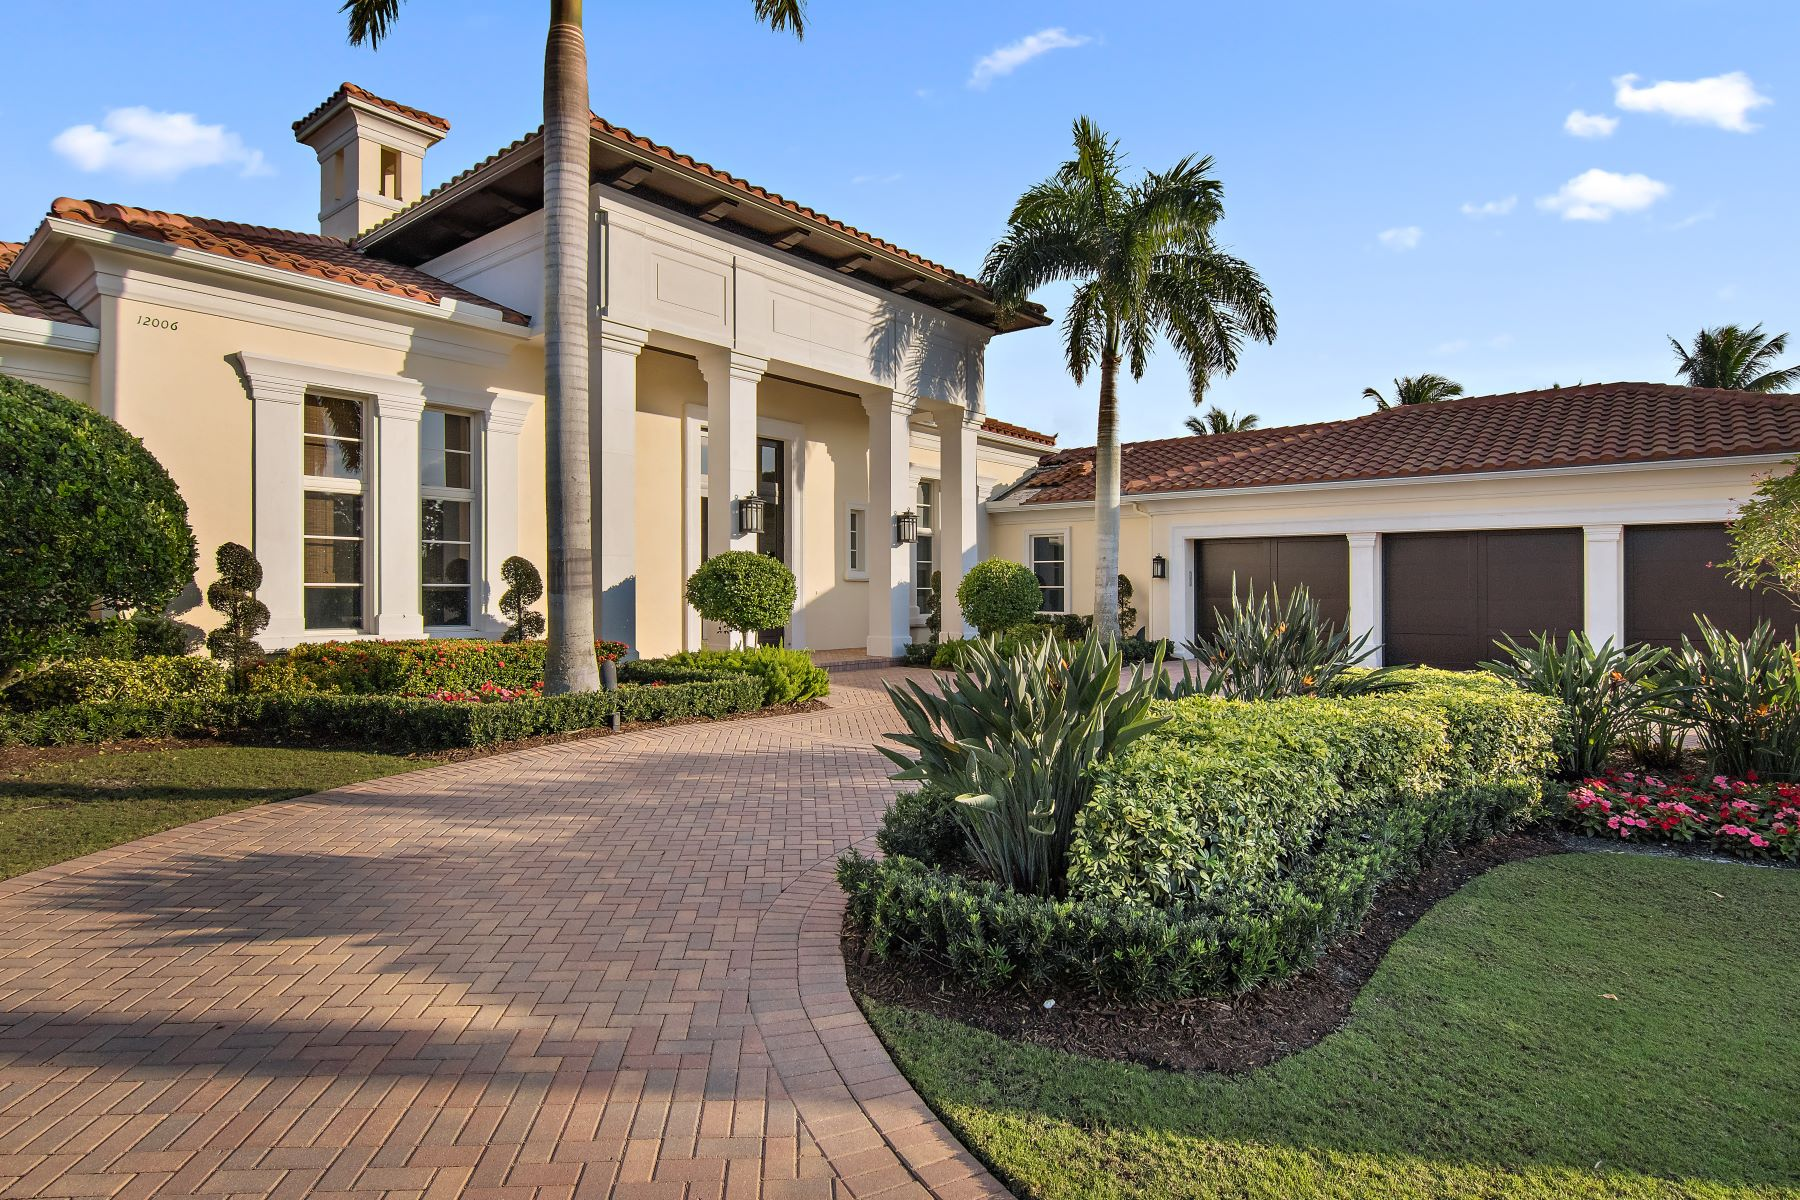 Single Family Home for Sale at 12006 Cielo Court 12006Cielo Court Palm Beach Gardens, Florida 33418 United States